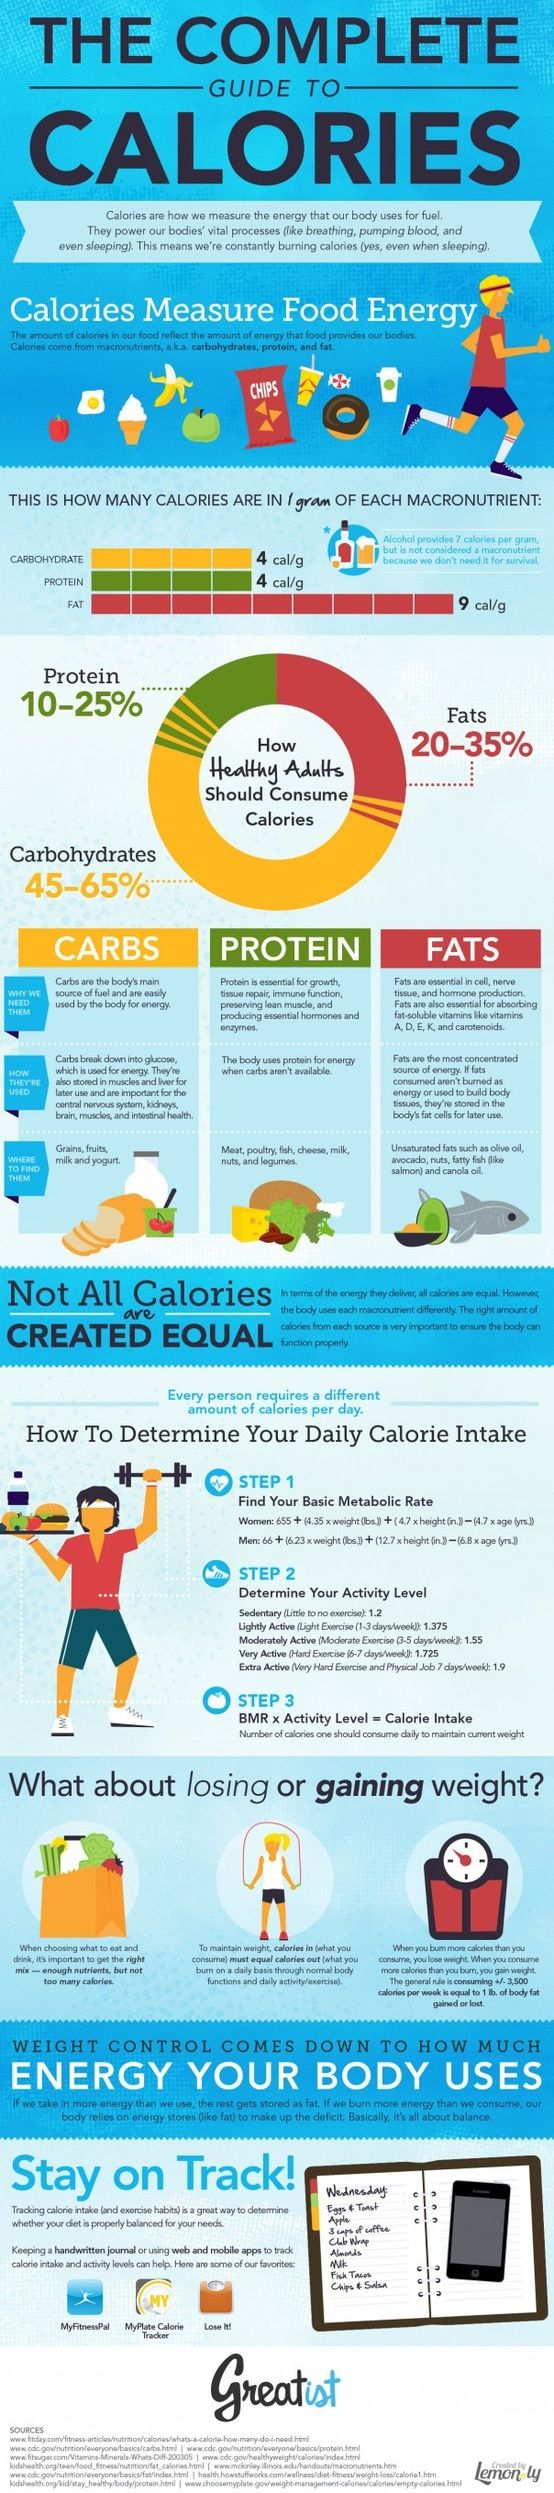 Educational : Daily Calorie Intake Calculator | Health Blog